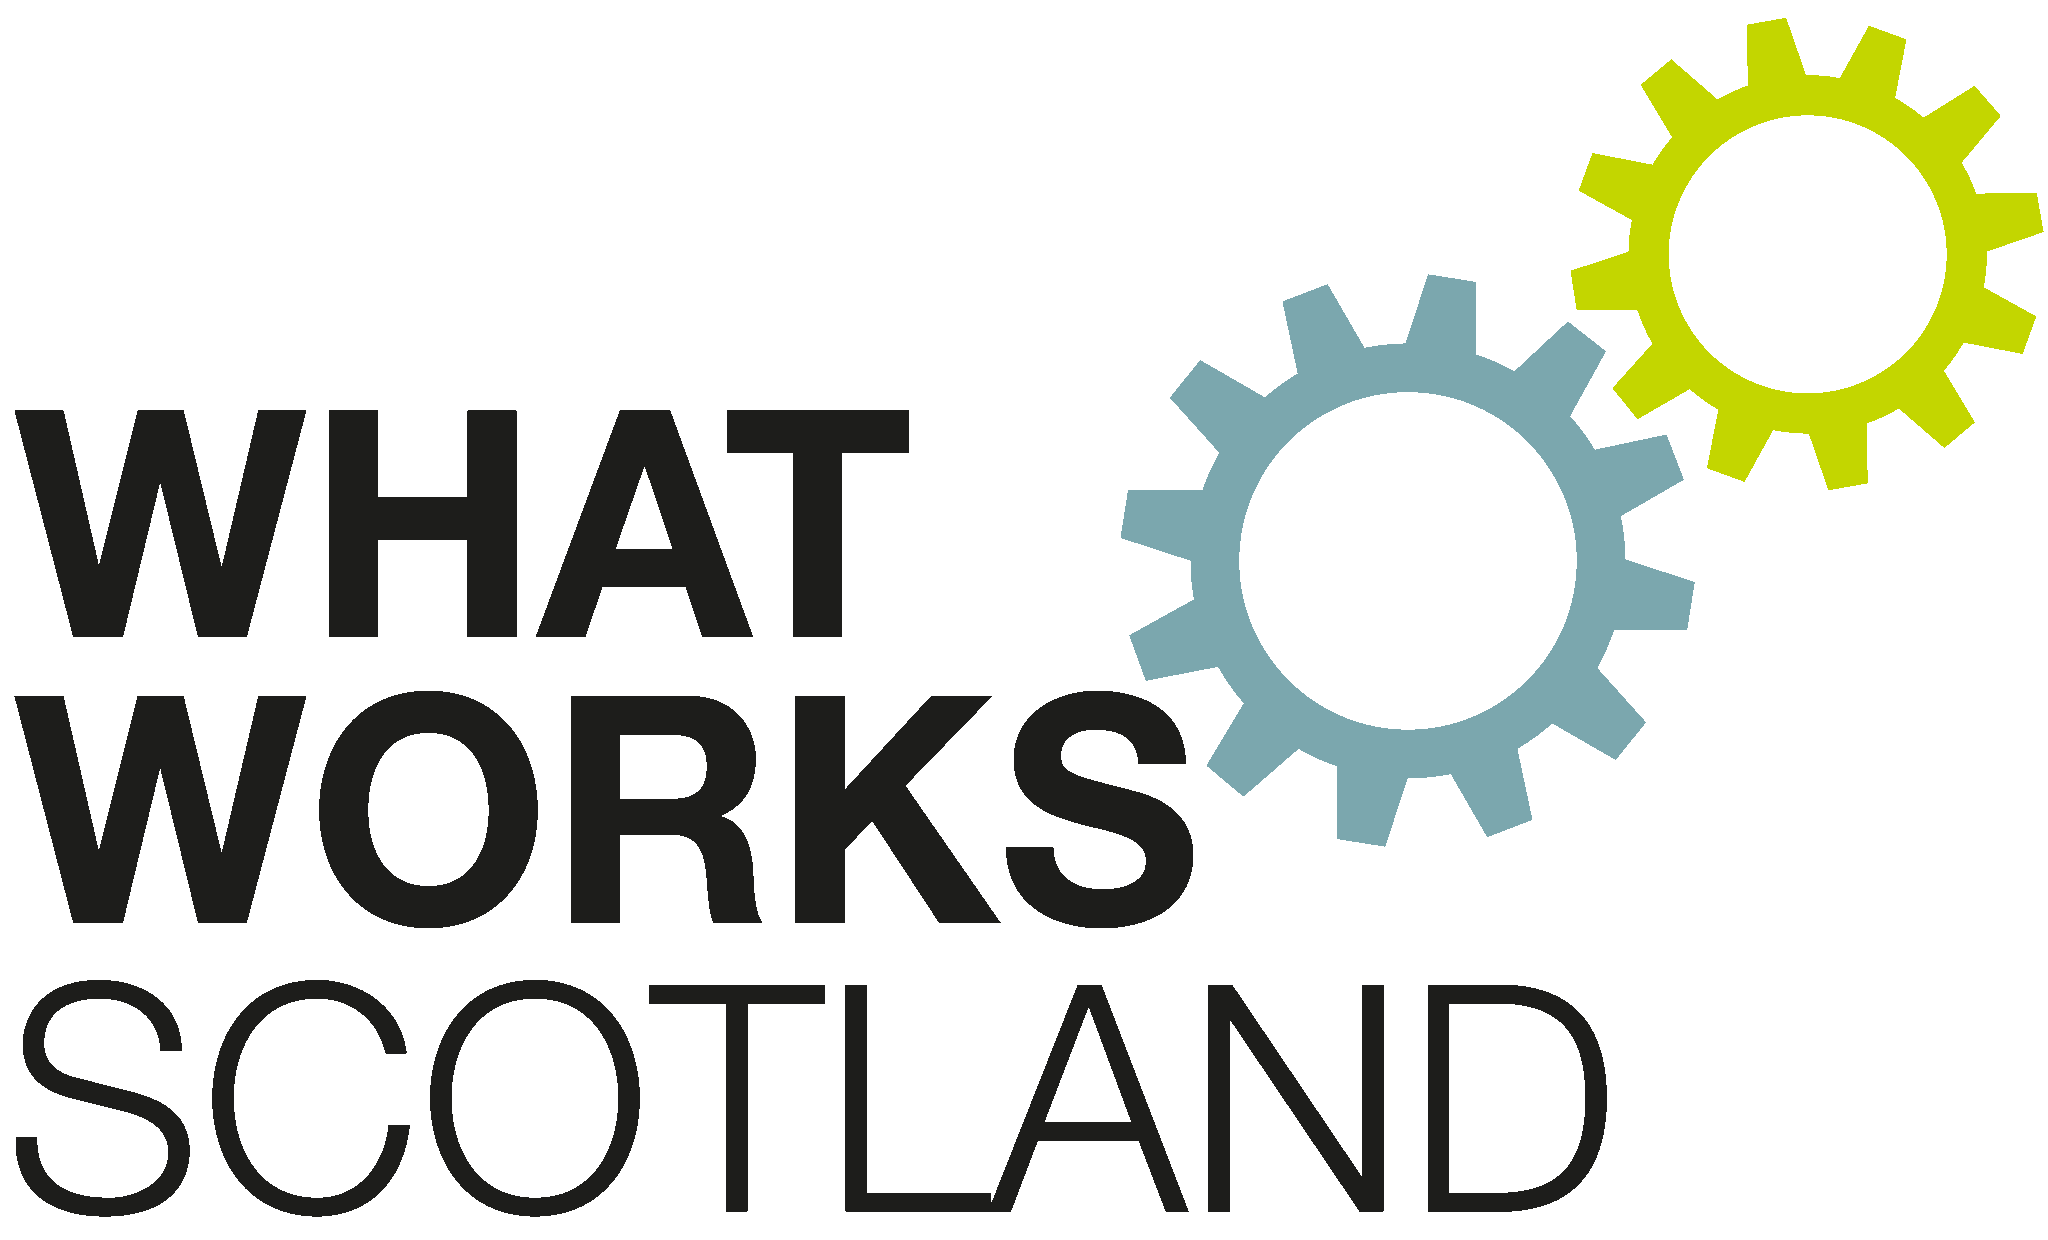 What Works Scotland – Place-based partnering